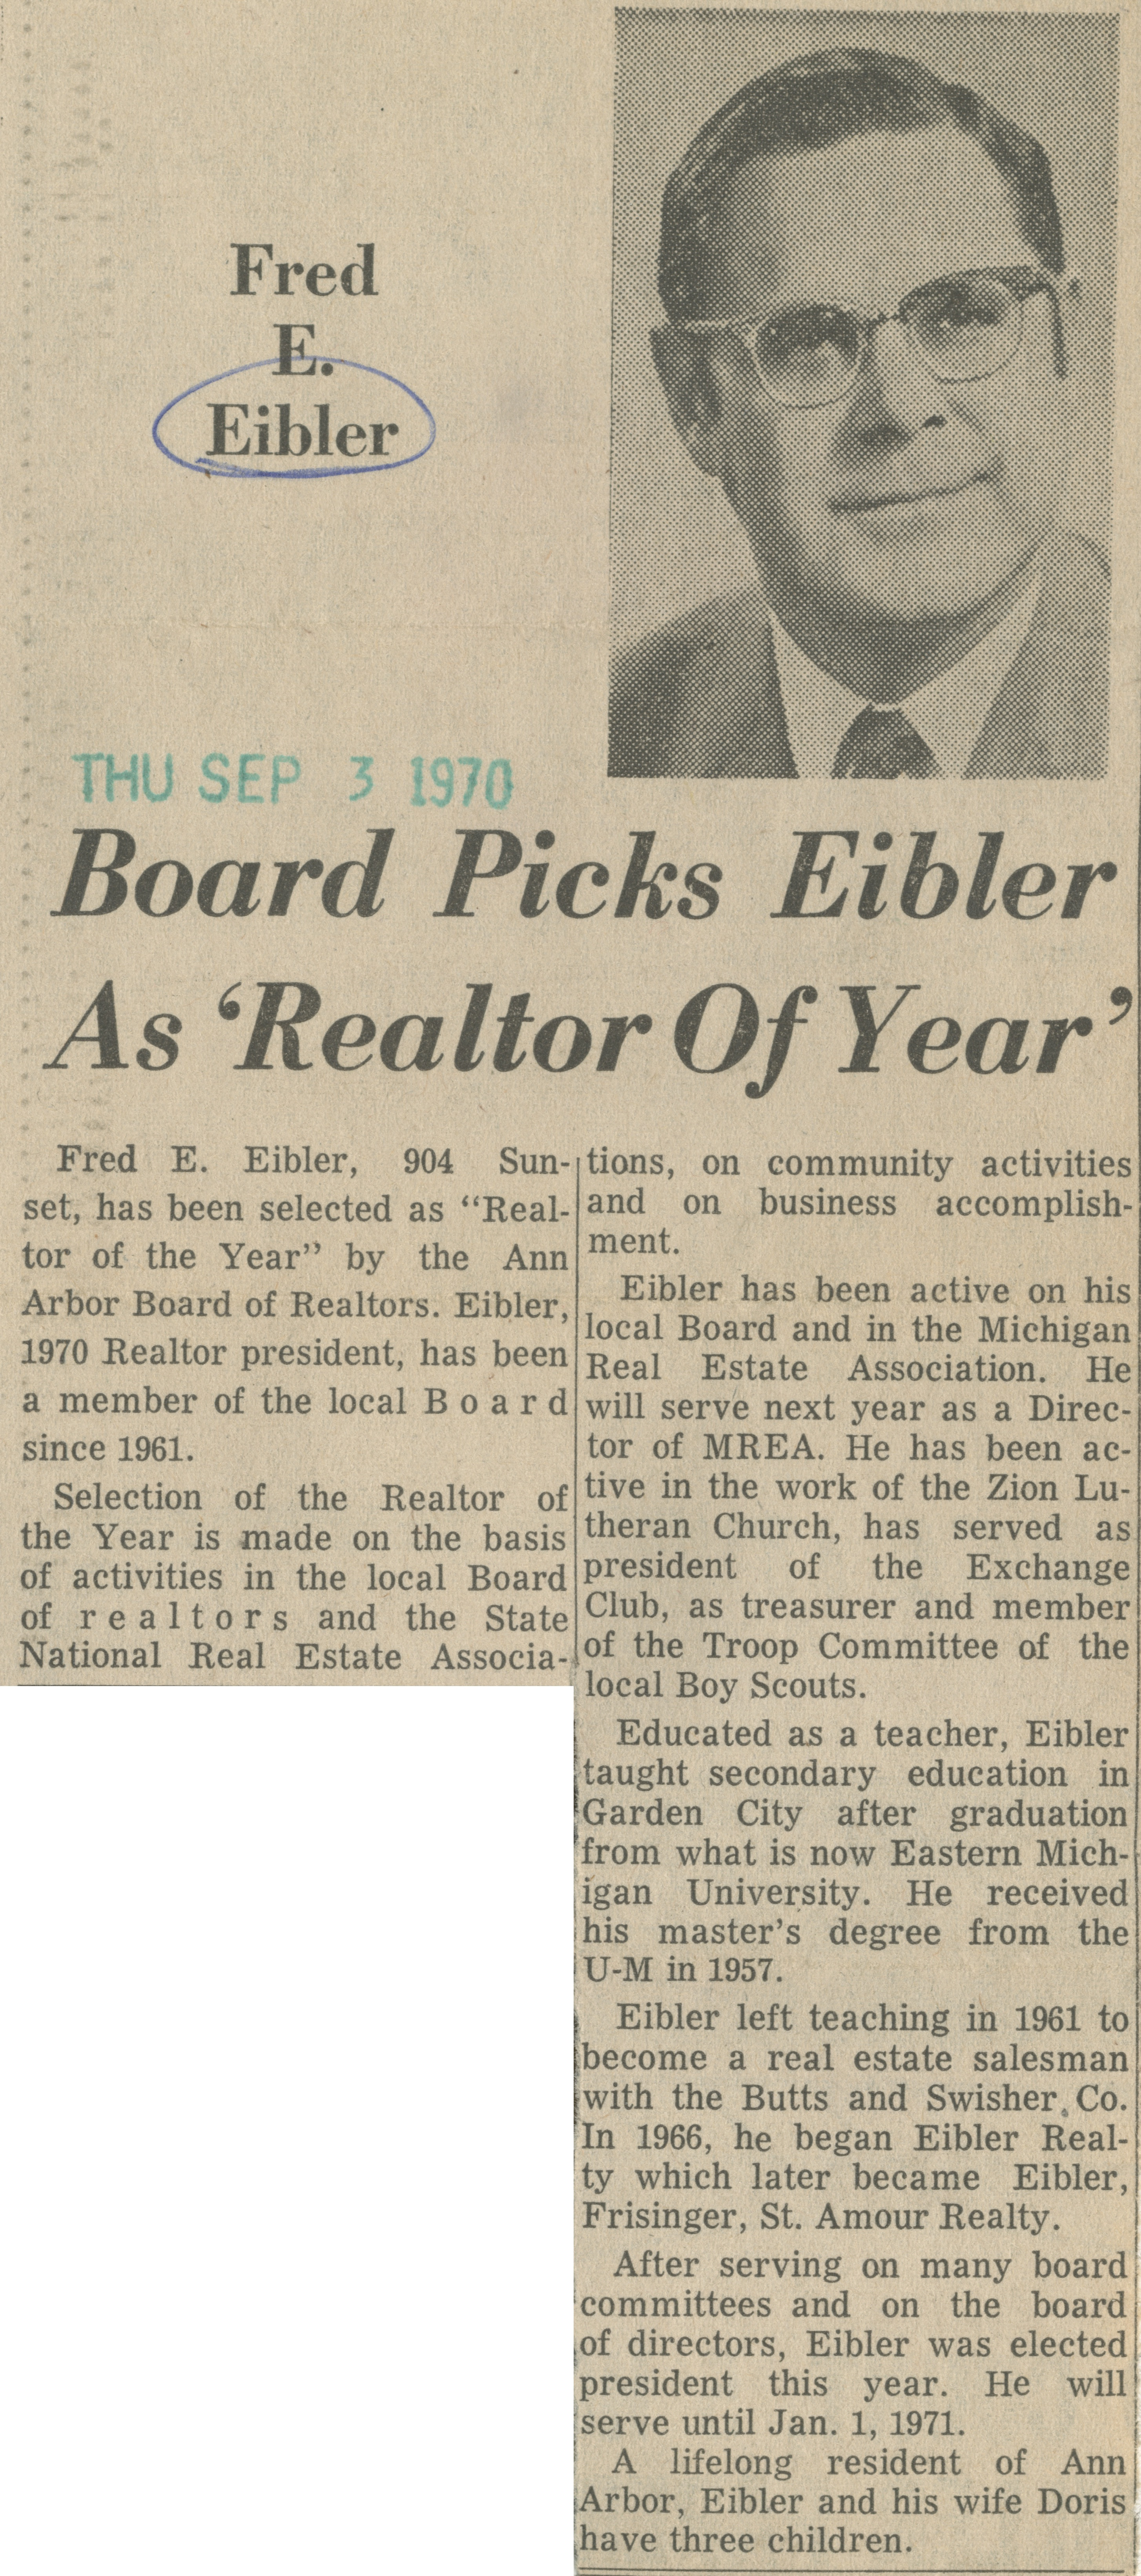 Board Picks Eibler As 'Realtor Of Year' image